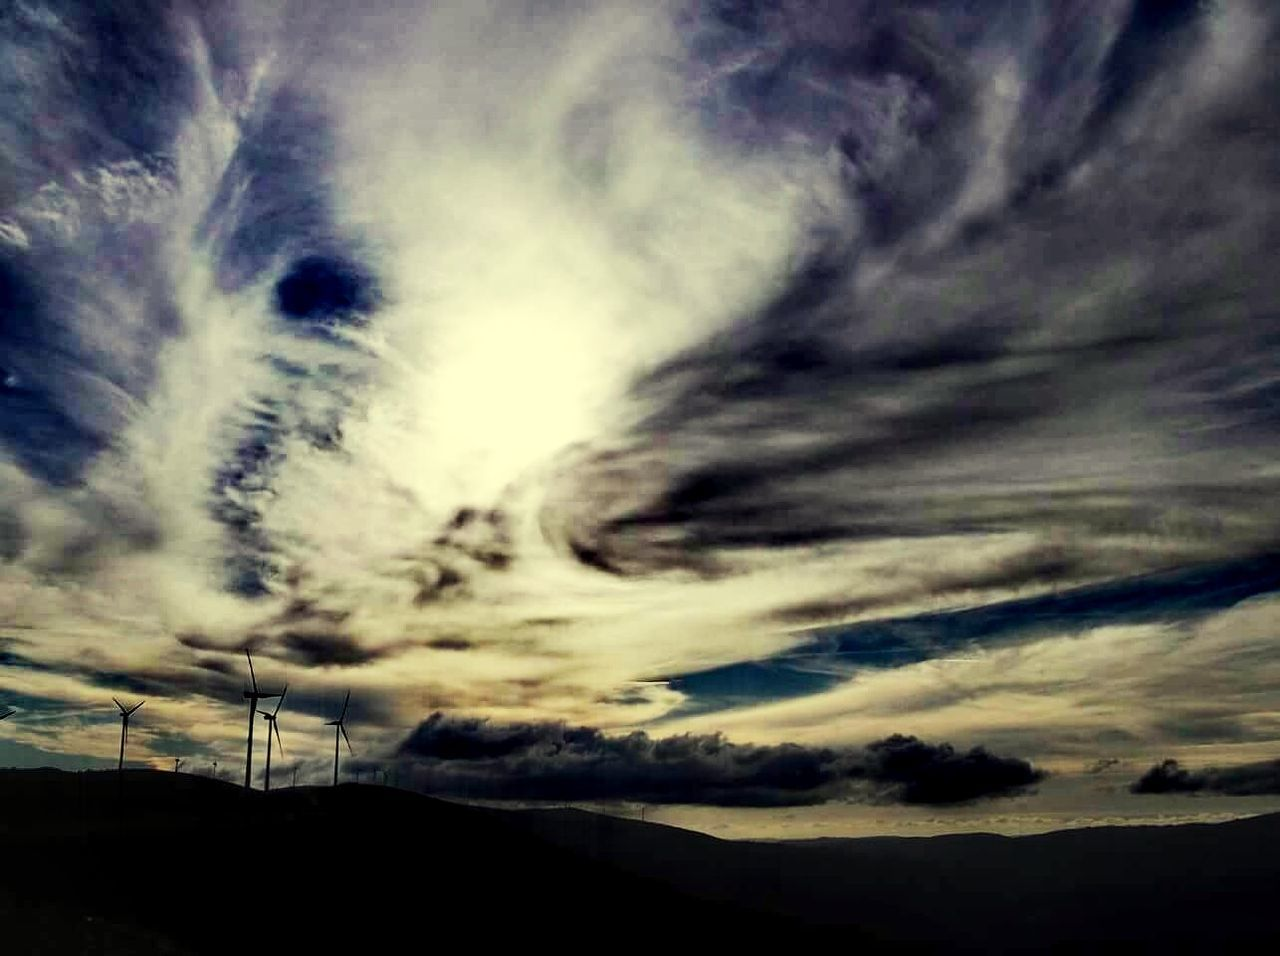 cloud - sky, sky, scenics, nature, tranquil scene, beauty in nature, majestic, dramatic sky, sunset, tranquility, no people, landscape, outdoors, low angle view, awe, silhouette, mountain, day, vapor trail